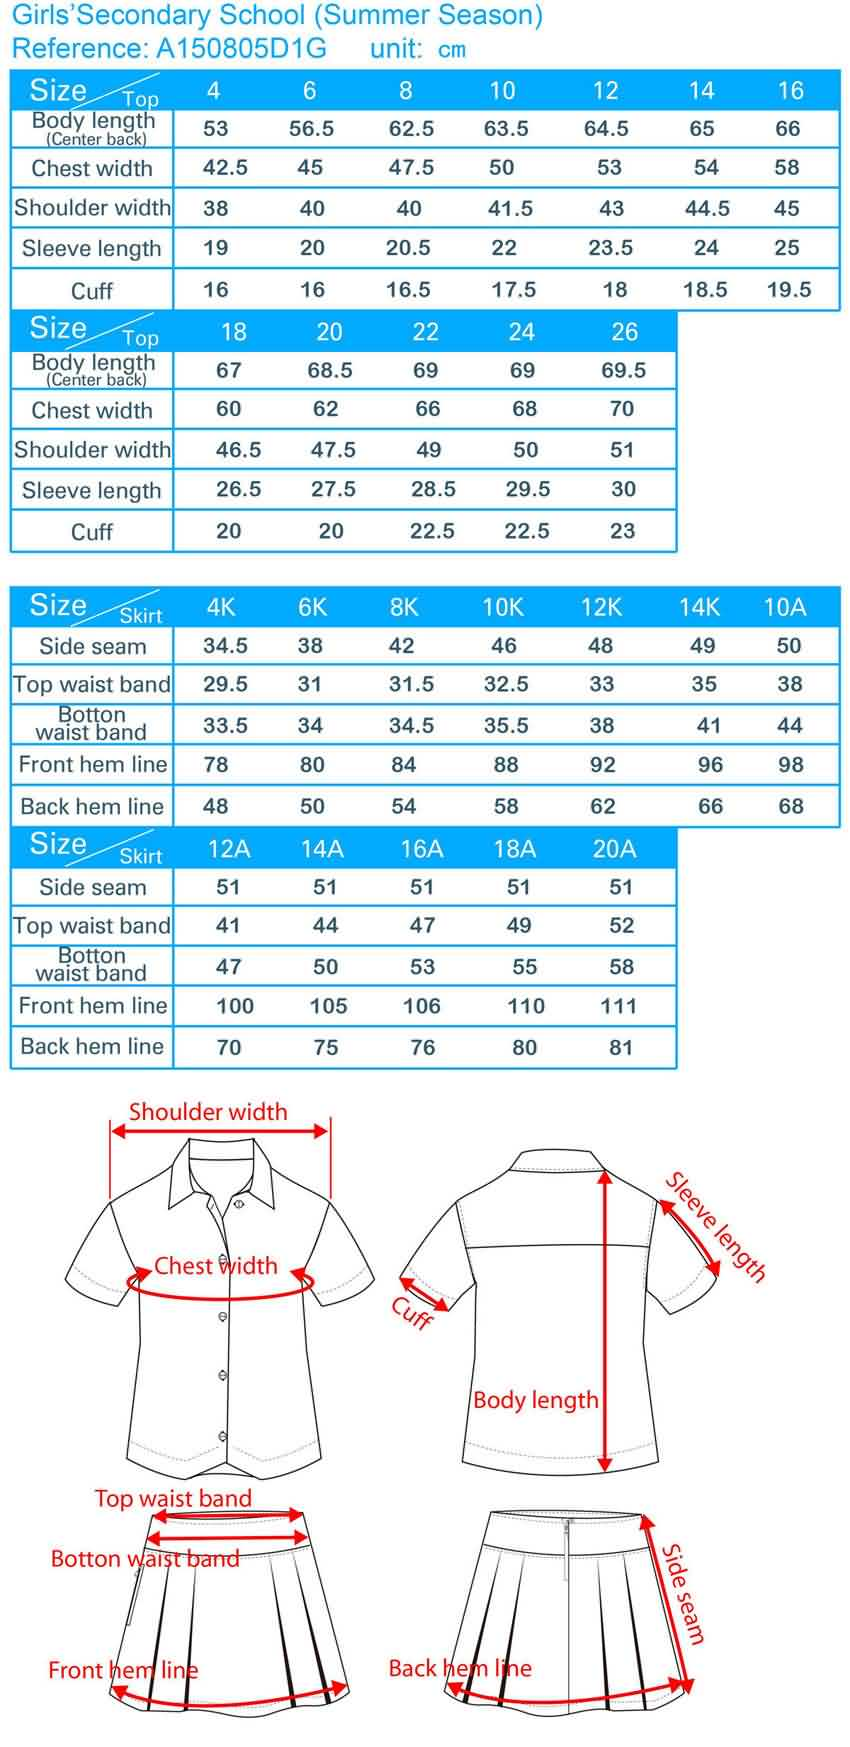 secondary school uniform size chart, schoolwear sizing guide